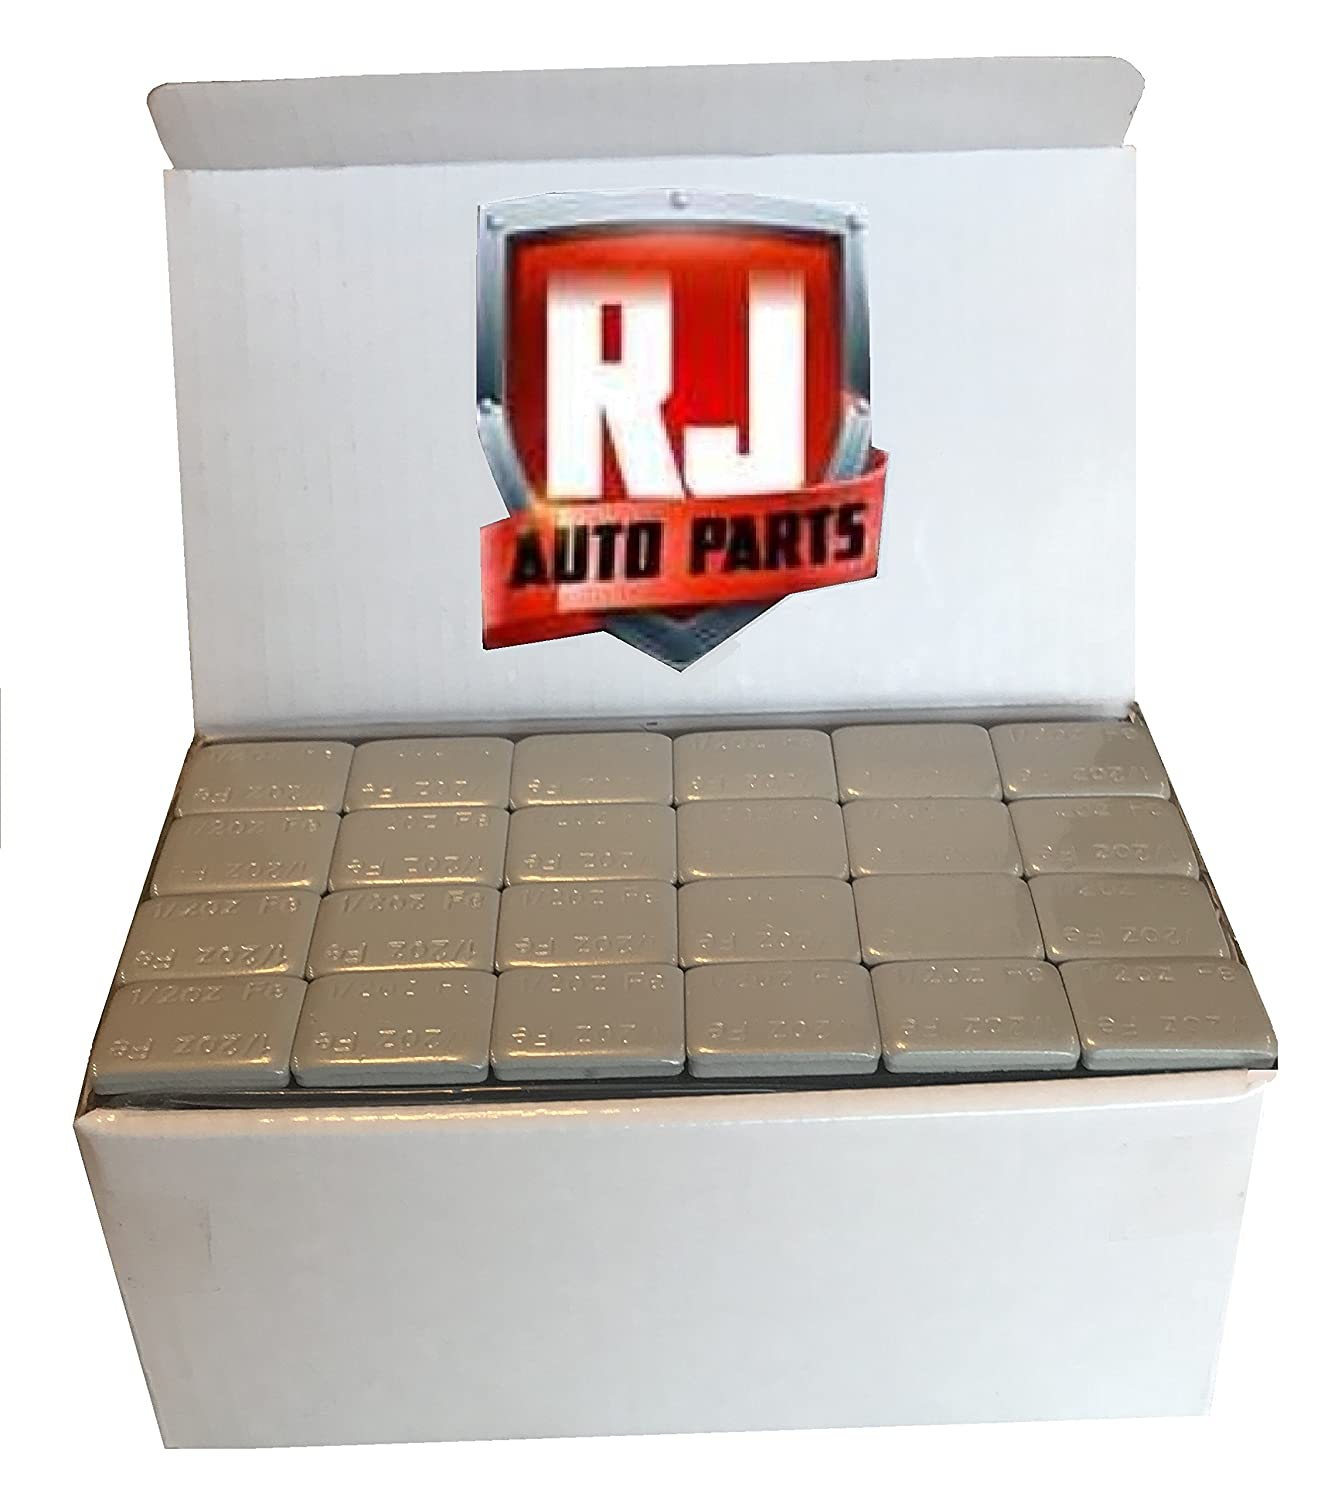 1 Box Wheel Weights, Grey 1/2 oz. Stick-on Adhesive Tape, Lead Free (9 lbs) 288 Pieces RJ Auto Parts